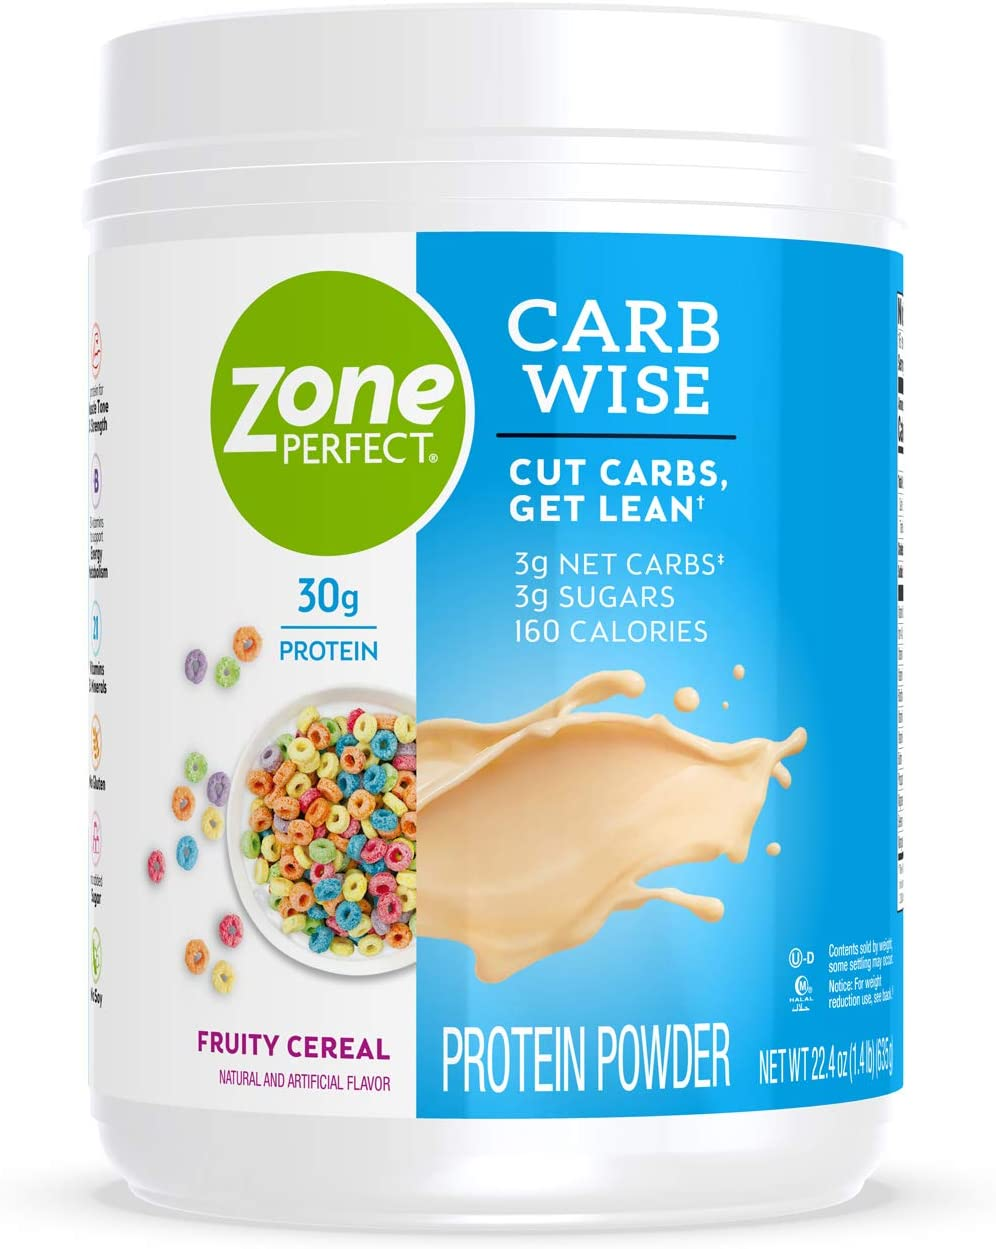 ZonePerfect Carb Wise High-Protein Powder